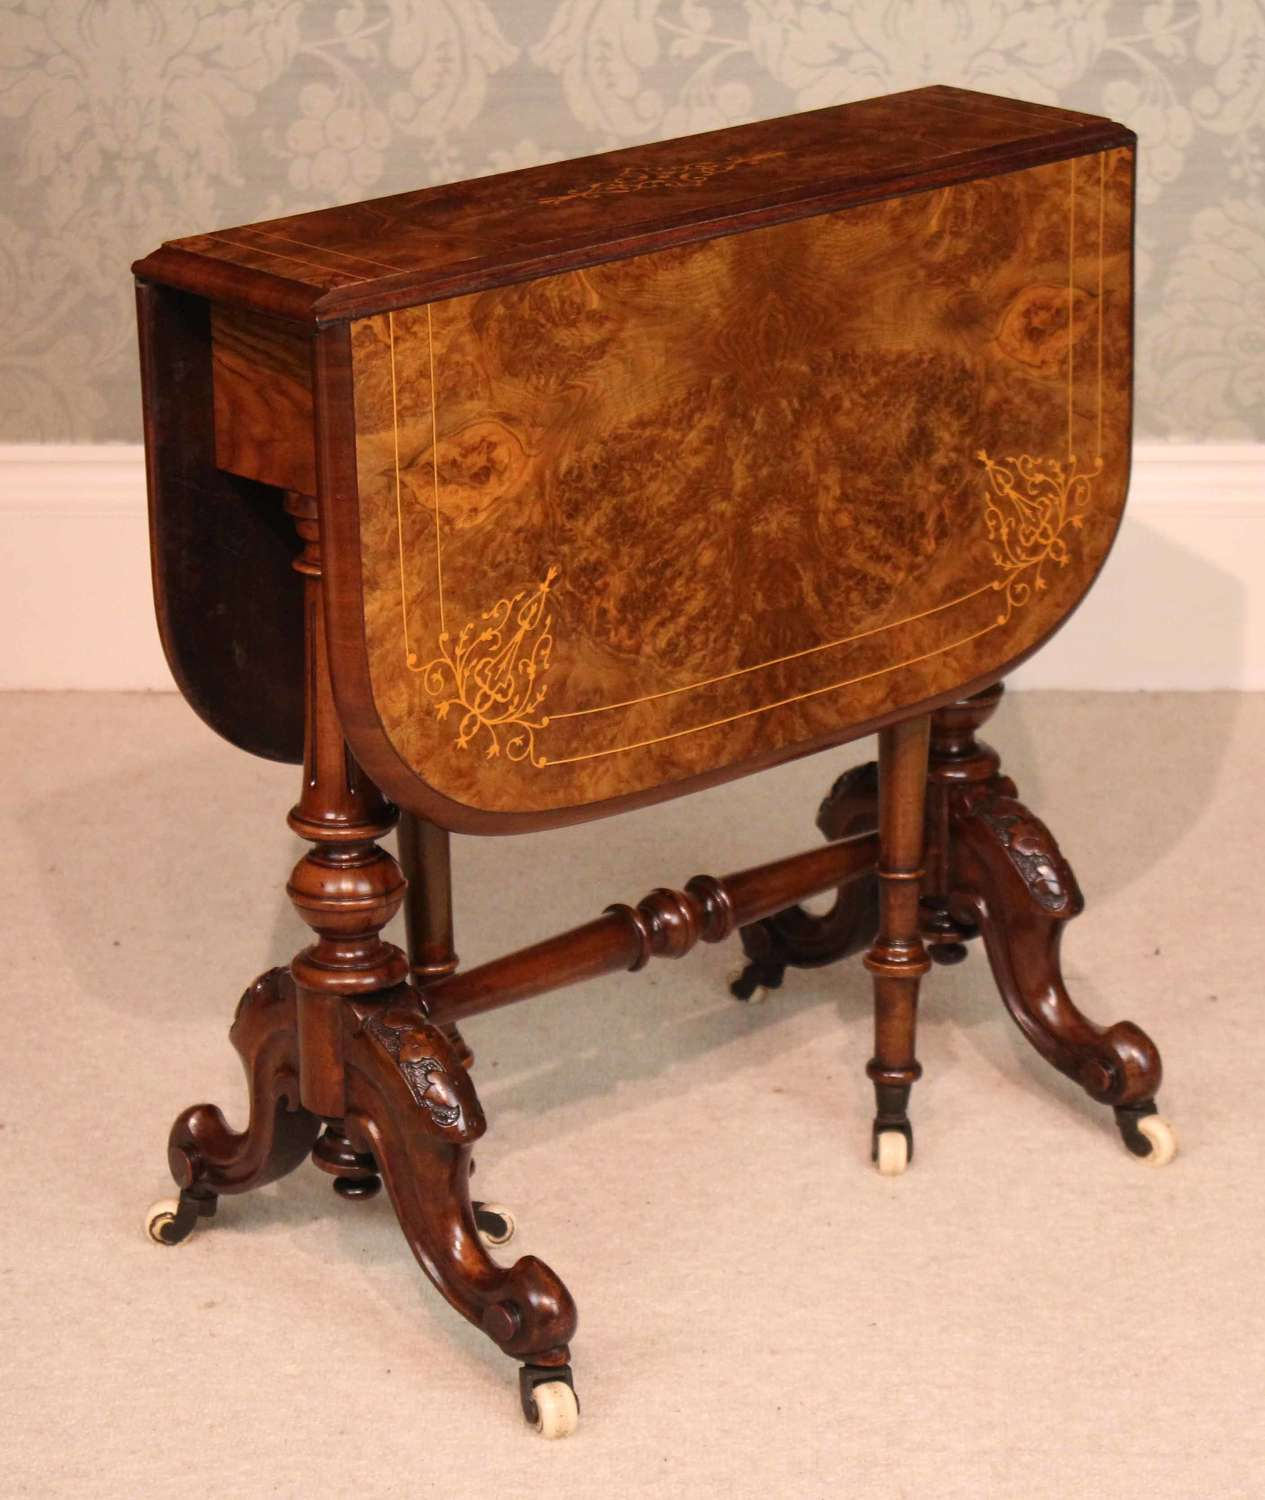 A Fine Quality Burr Walnut Inlaid Baby Sutherland Table.